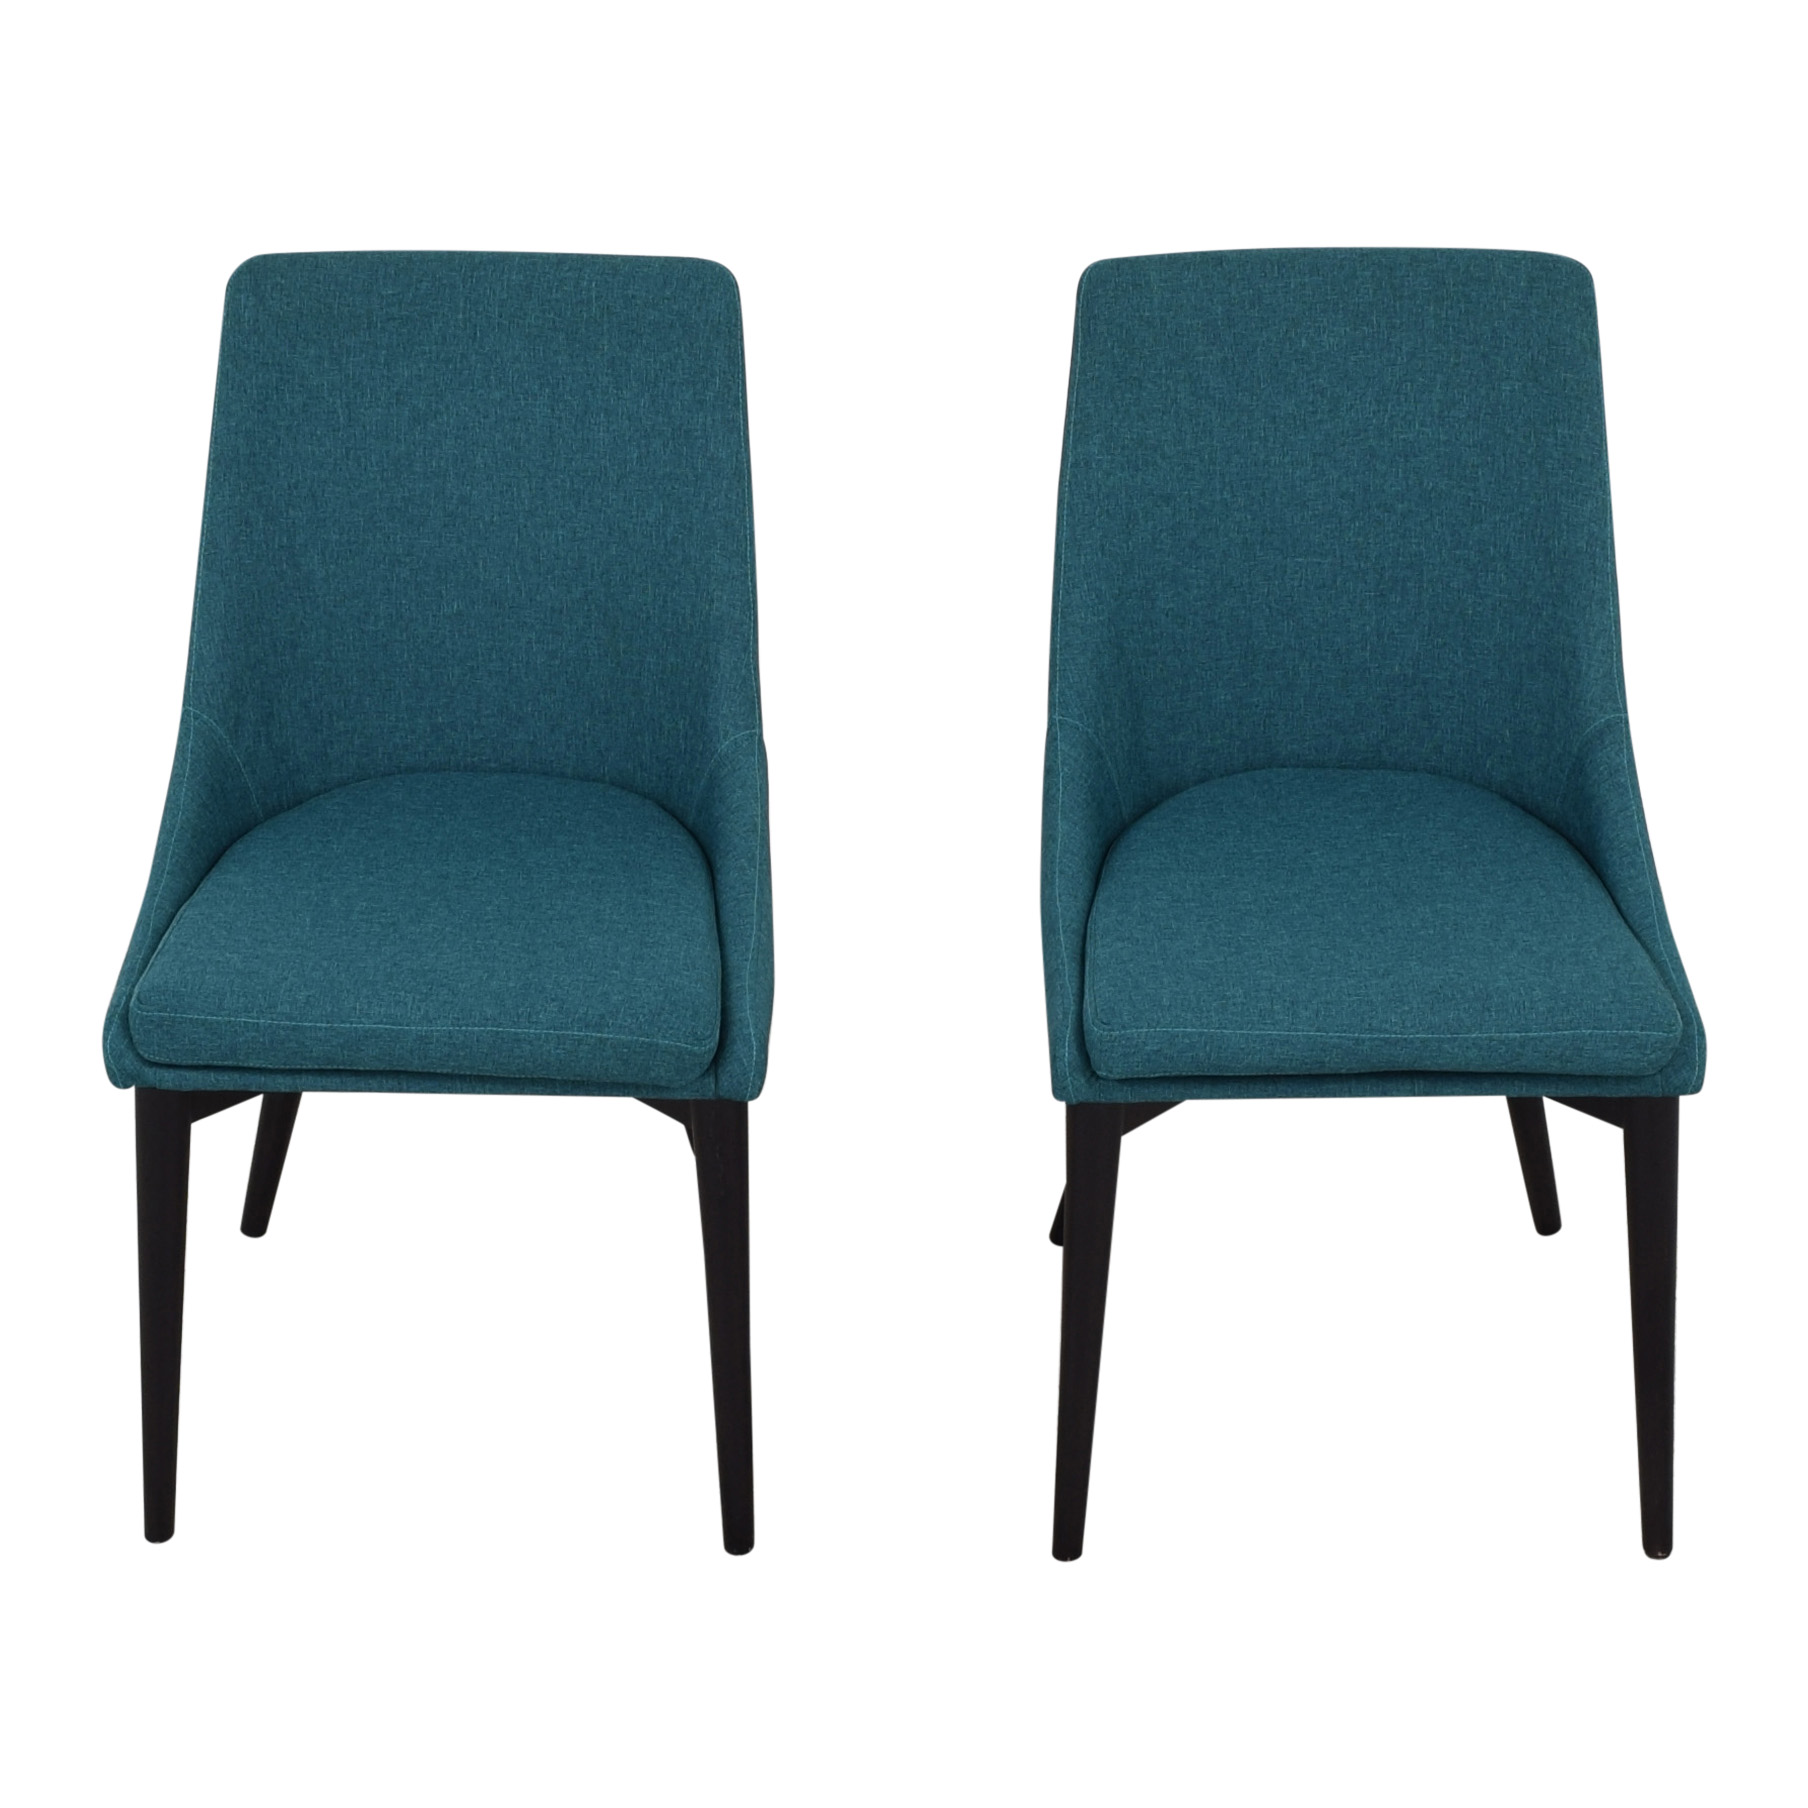 Modway Viscount Dining Chairs Modway